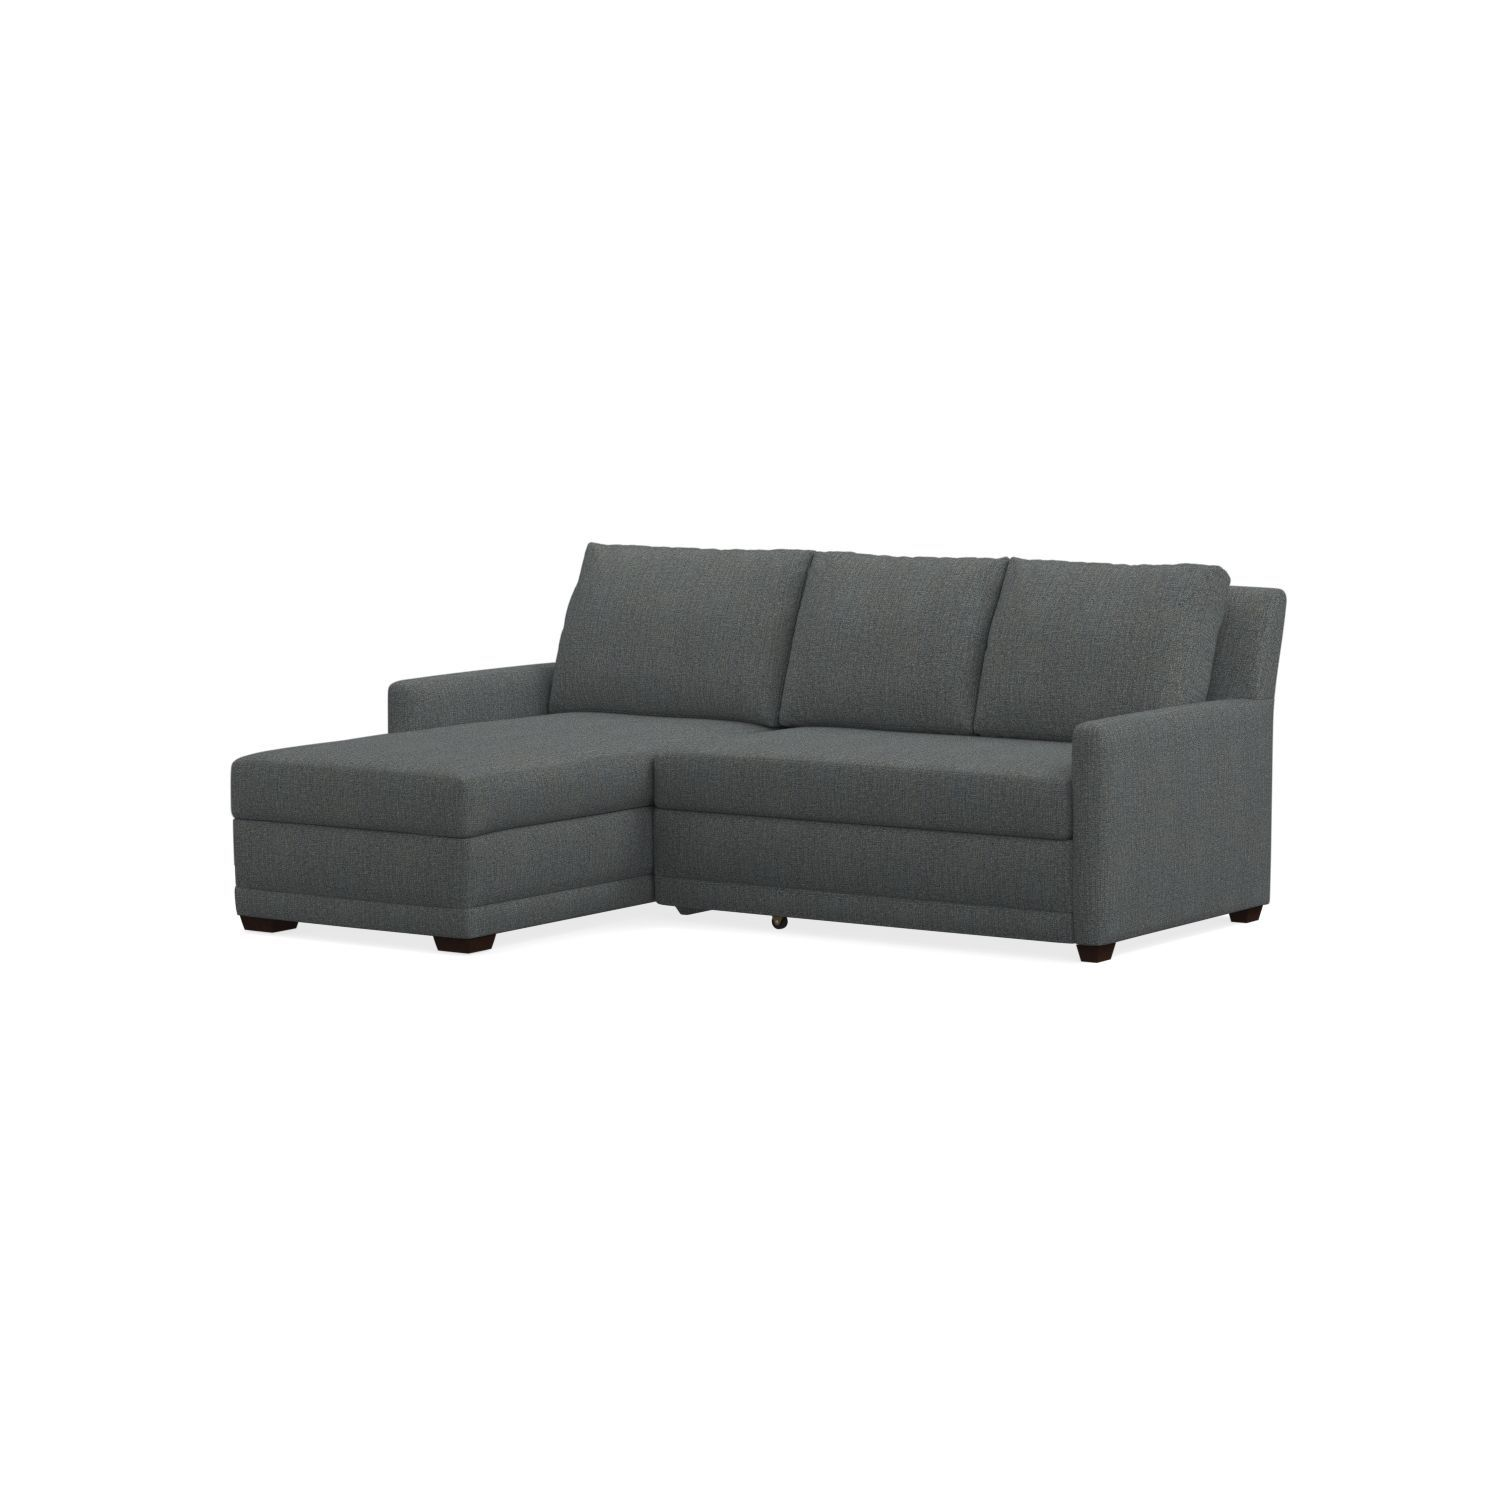 Groovy Reston 2 Piece Left Arm Chaise Trundle Sleeper Sectional Gmtry Best Dining Table And Chair Ideas Images Gmtryco